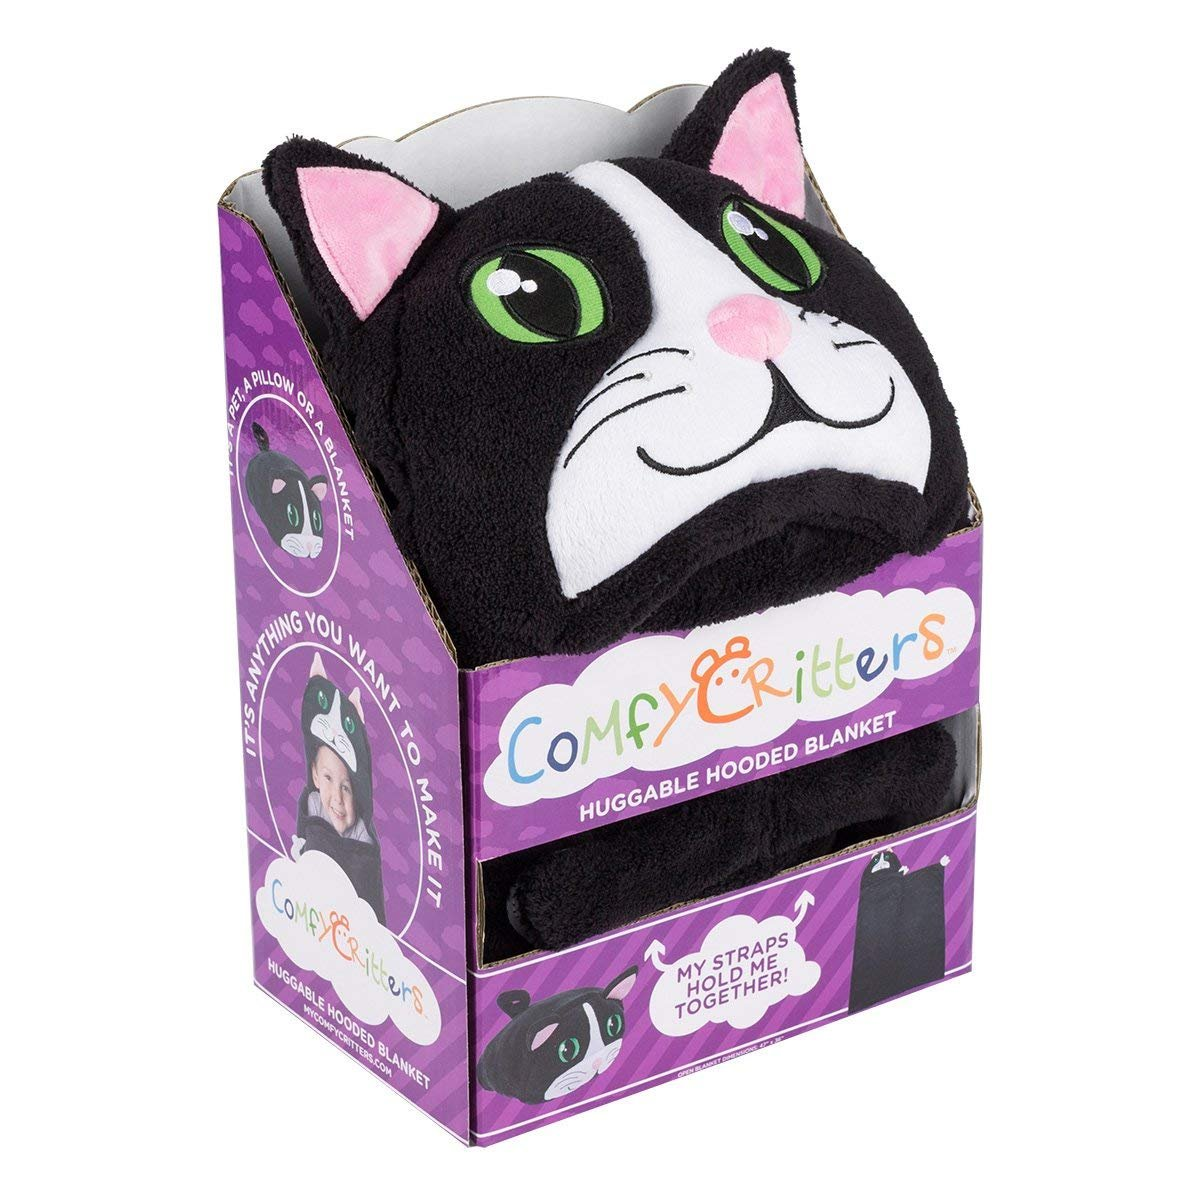 Comfy Critters Stuffed Animal Blanket – Cat – Kids huggable pillow and blanket perfect for pretend play, travel, nap time. by Comfy Critters (Image #8)